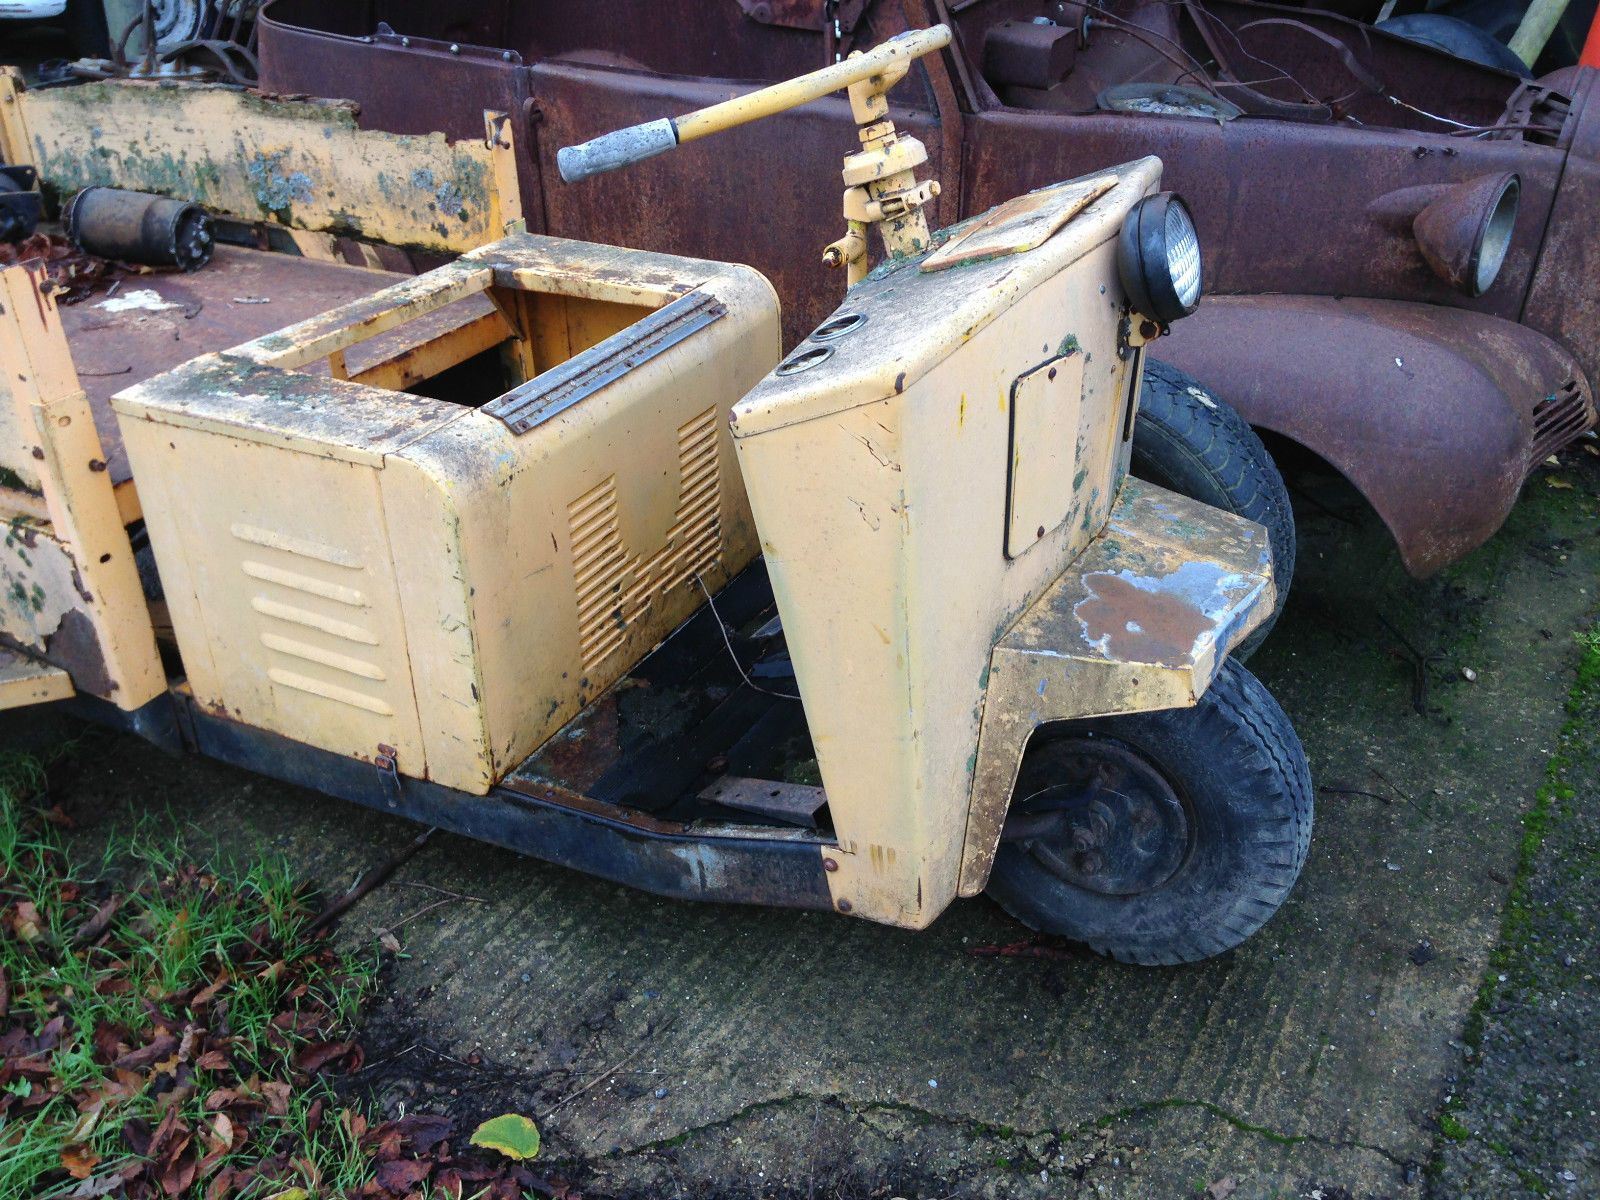 1950's Cushman utility truck pickup project or Hotrod  V8 Yard art Garden Object in Cars, Motorcycles & Vehicles, Classic Cars, American | eBay